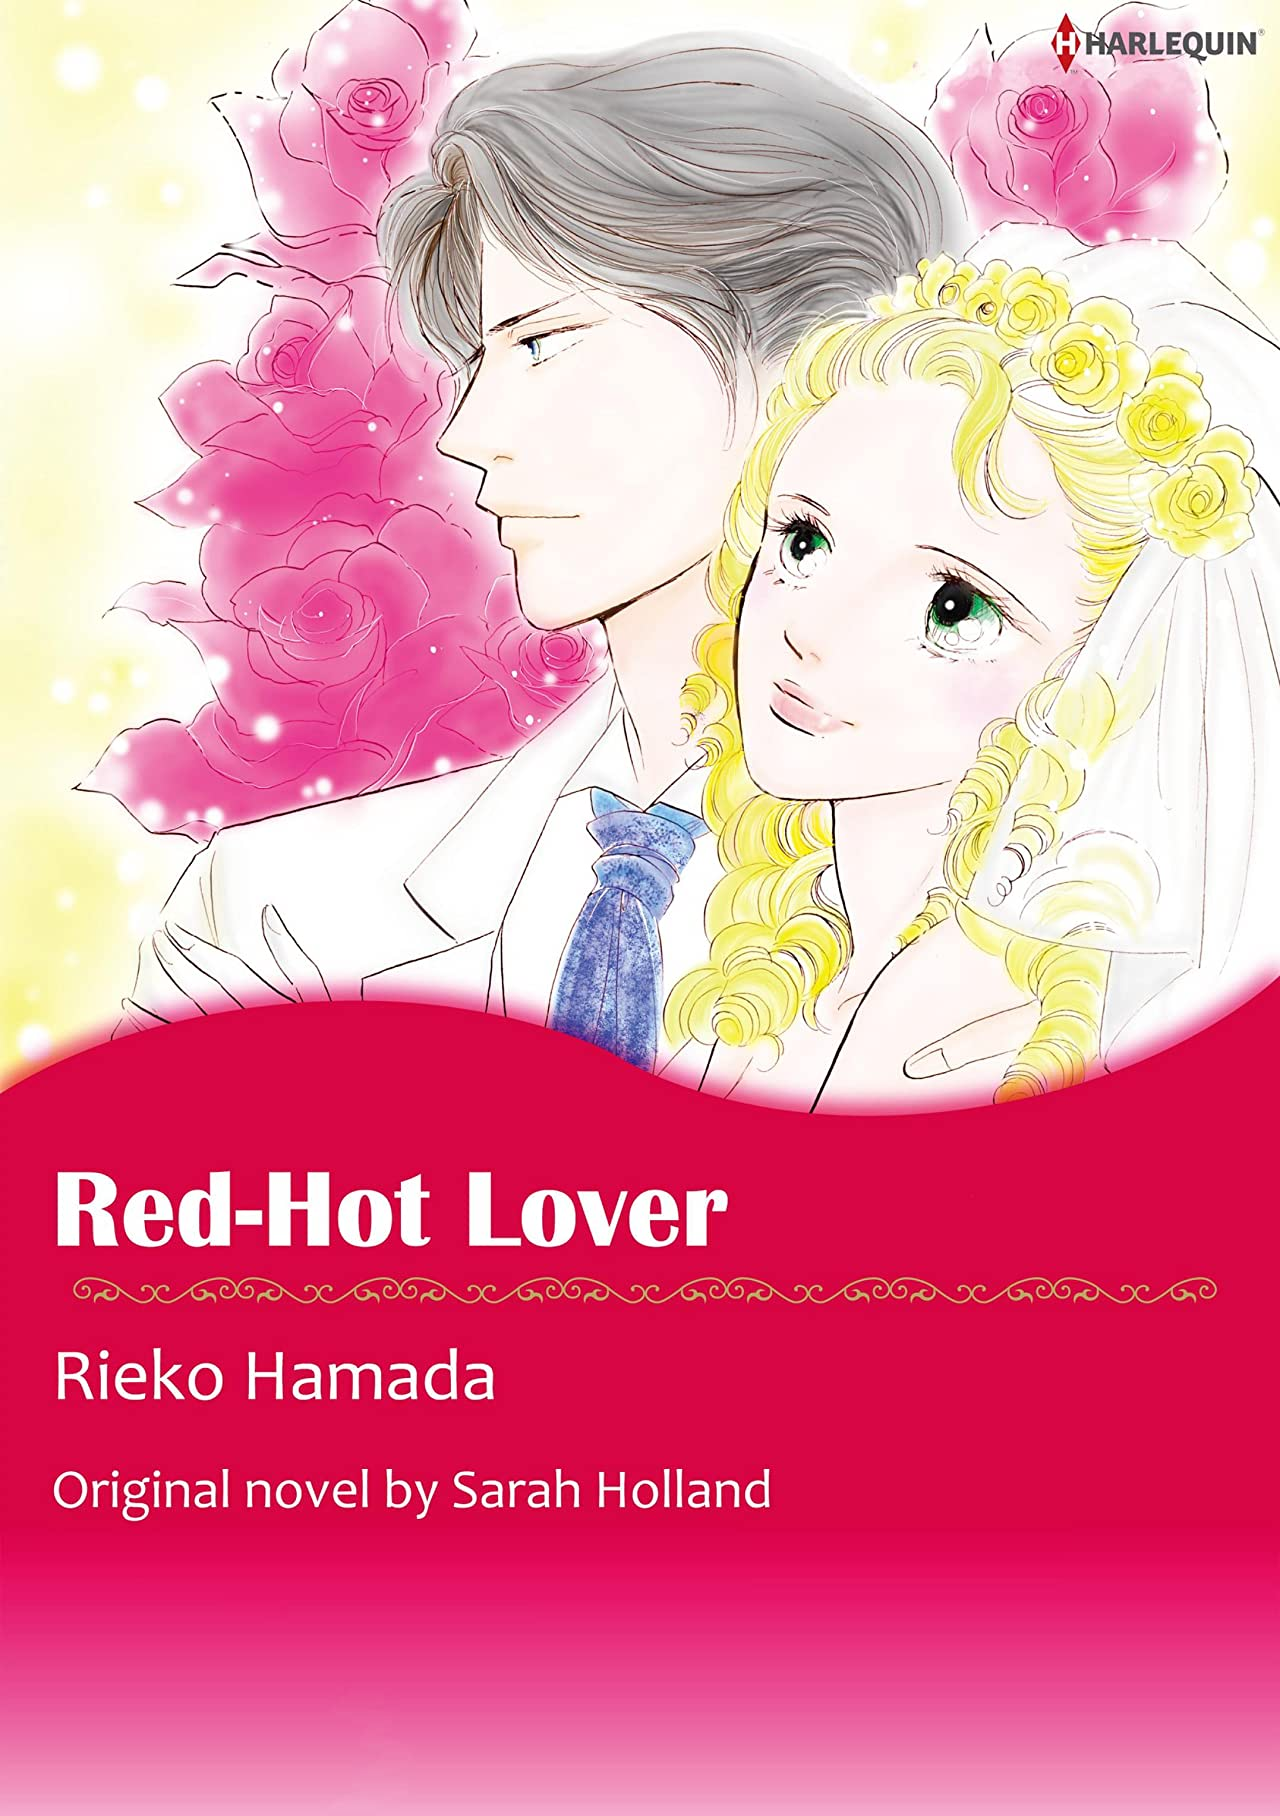 Red-Hot Lover